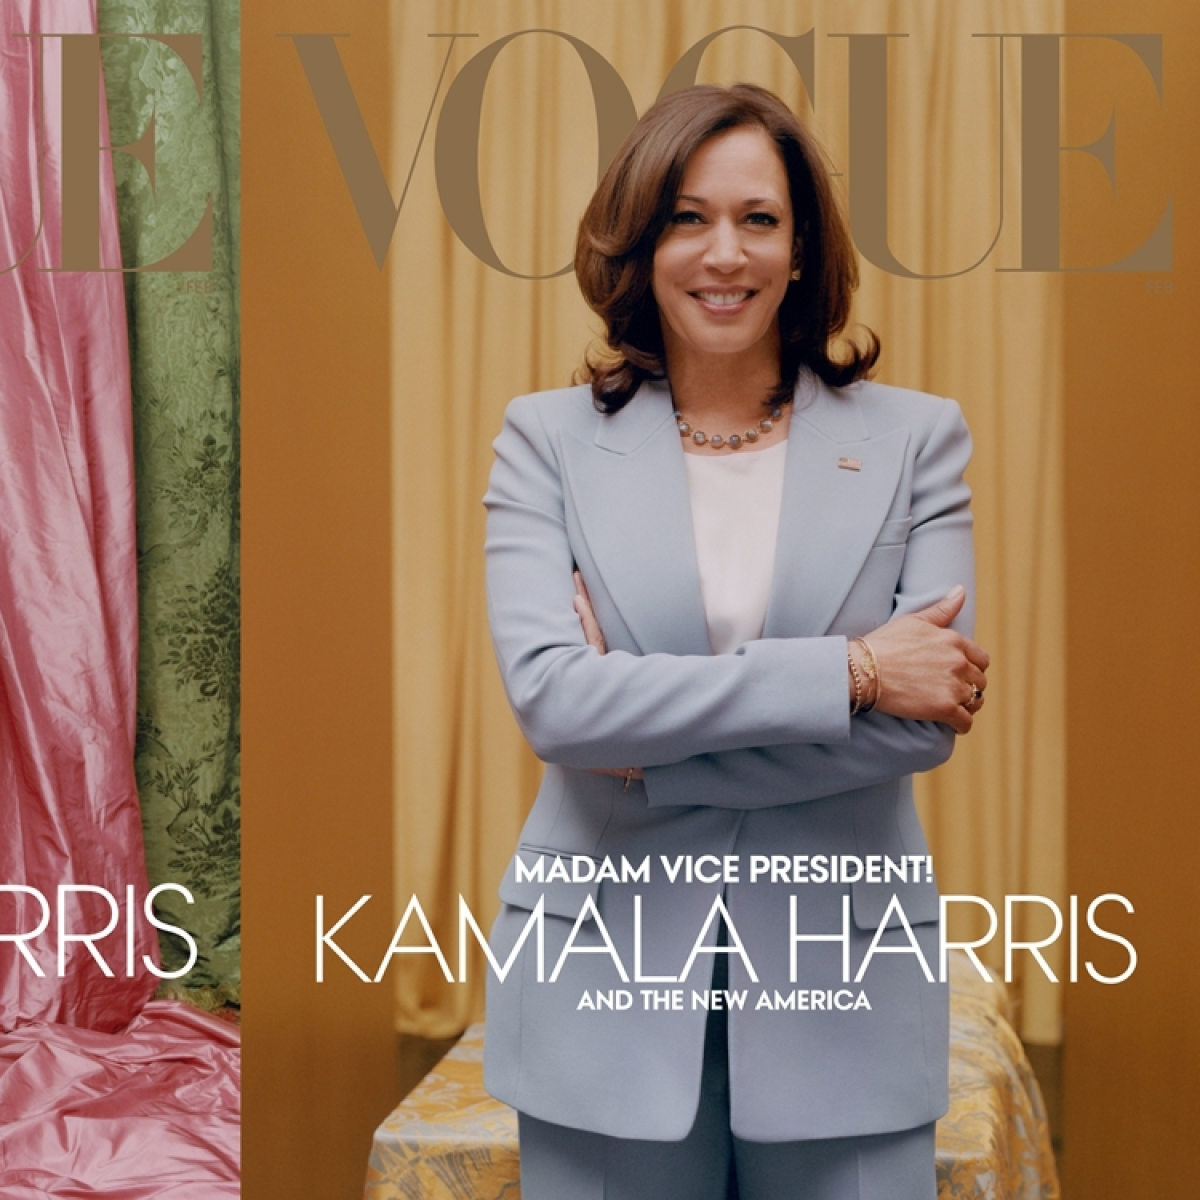 'This is just plain disrespectful': Vogue magazine called out for 'messing up' US VP Kamala Harris' cover